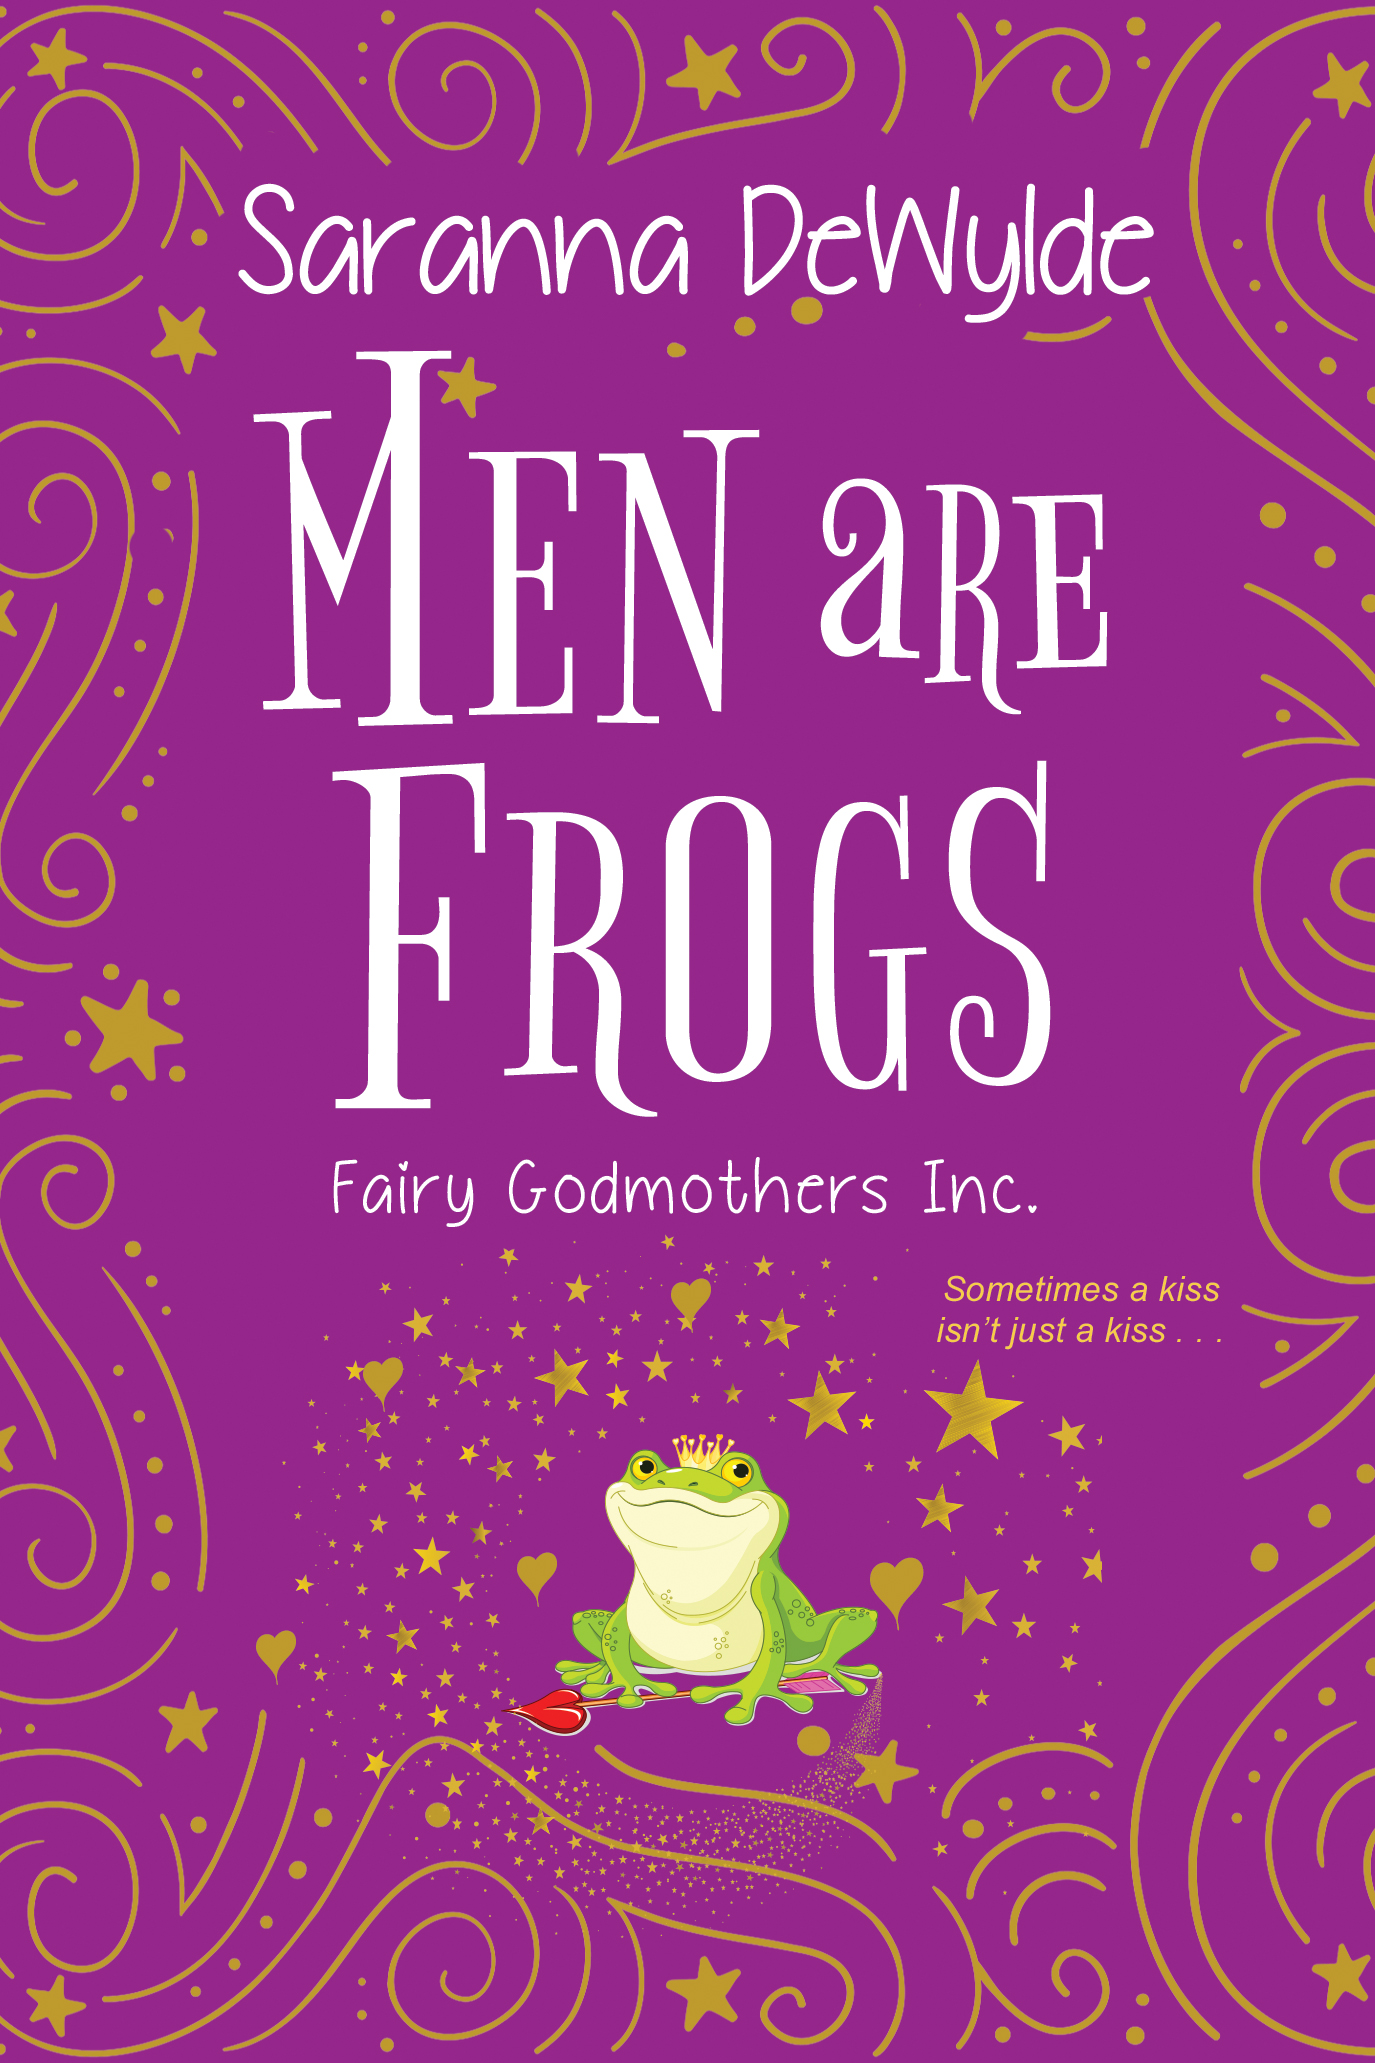 Men Are Frogs A Magical Romance with Humor and Heart